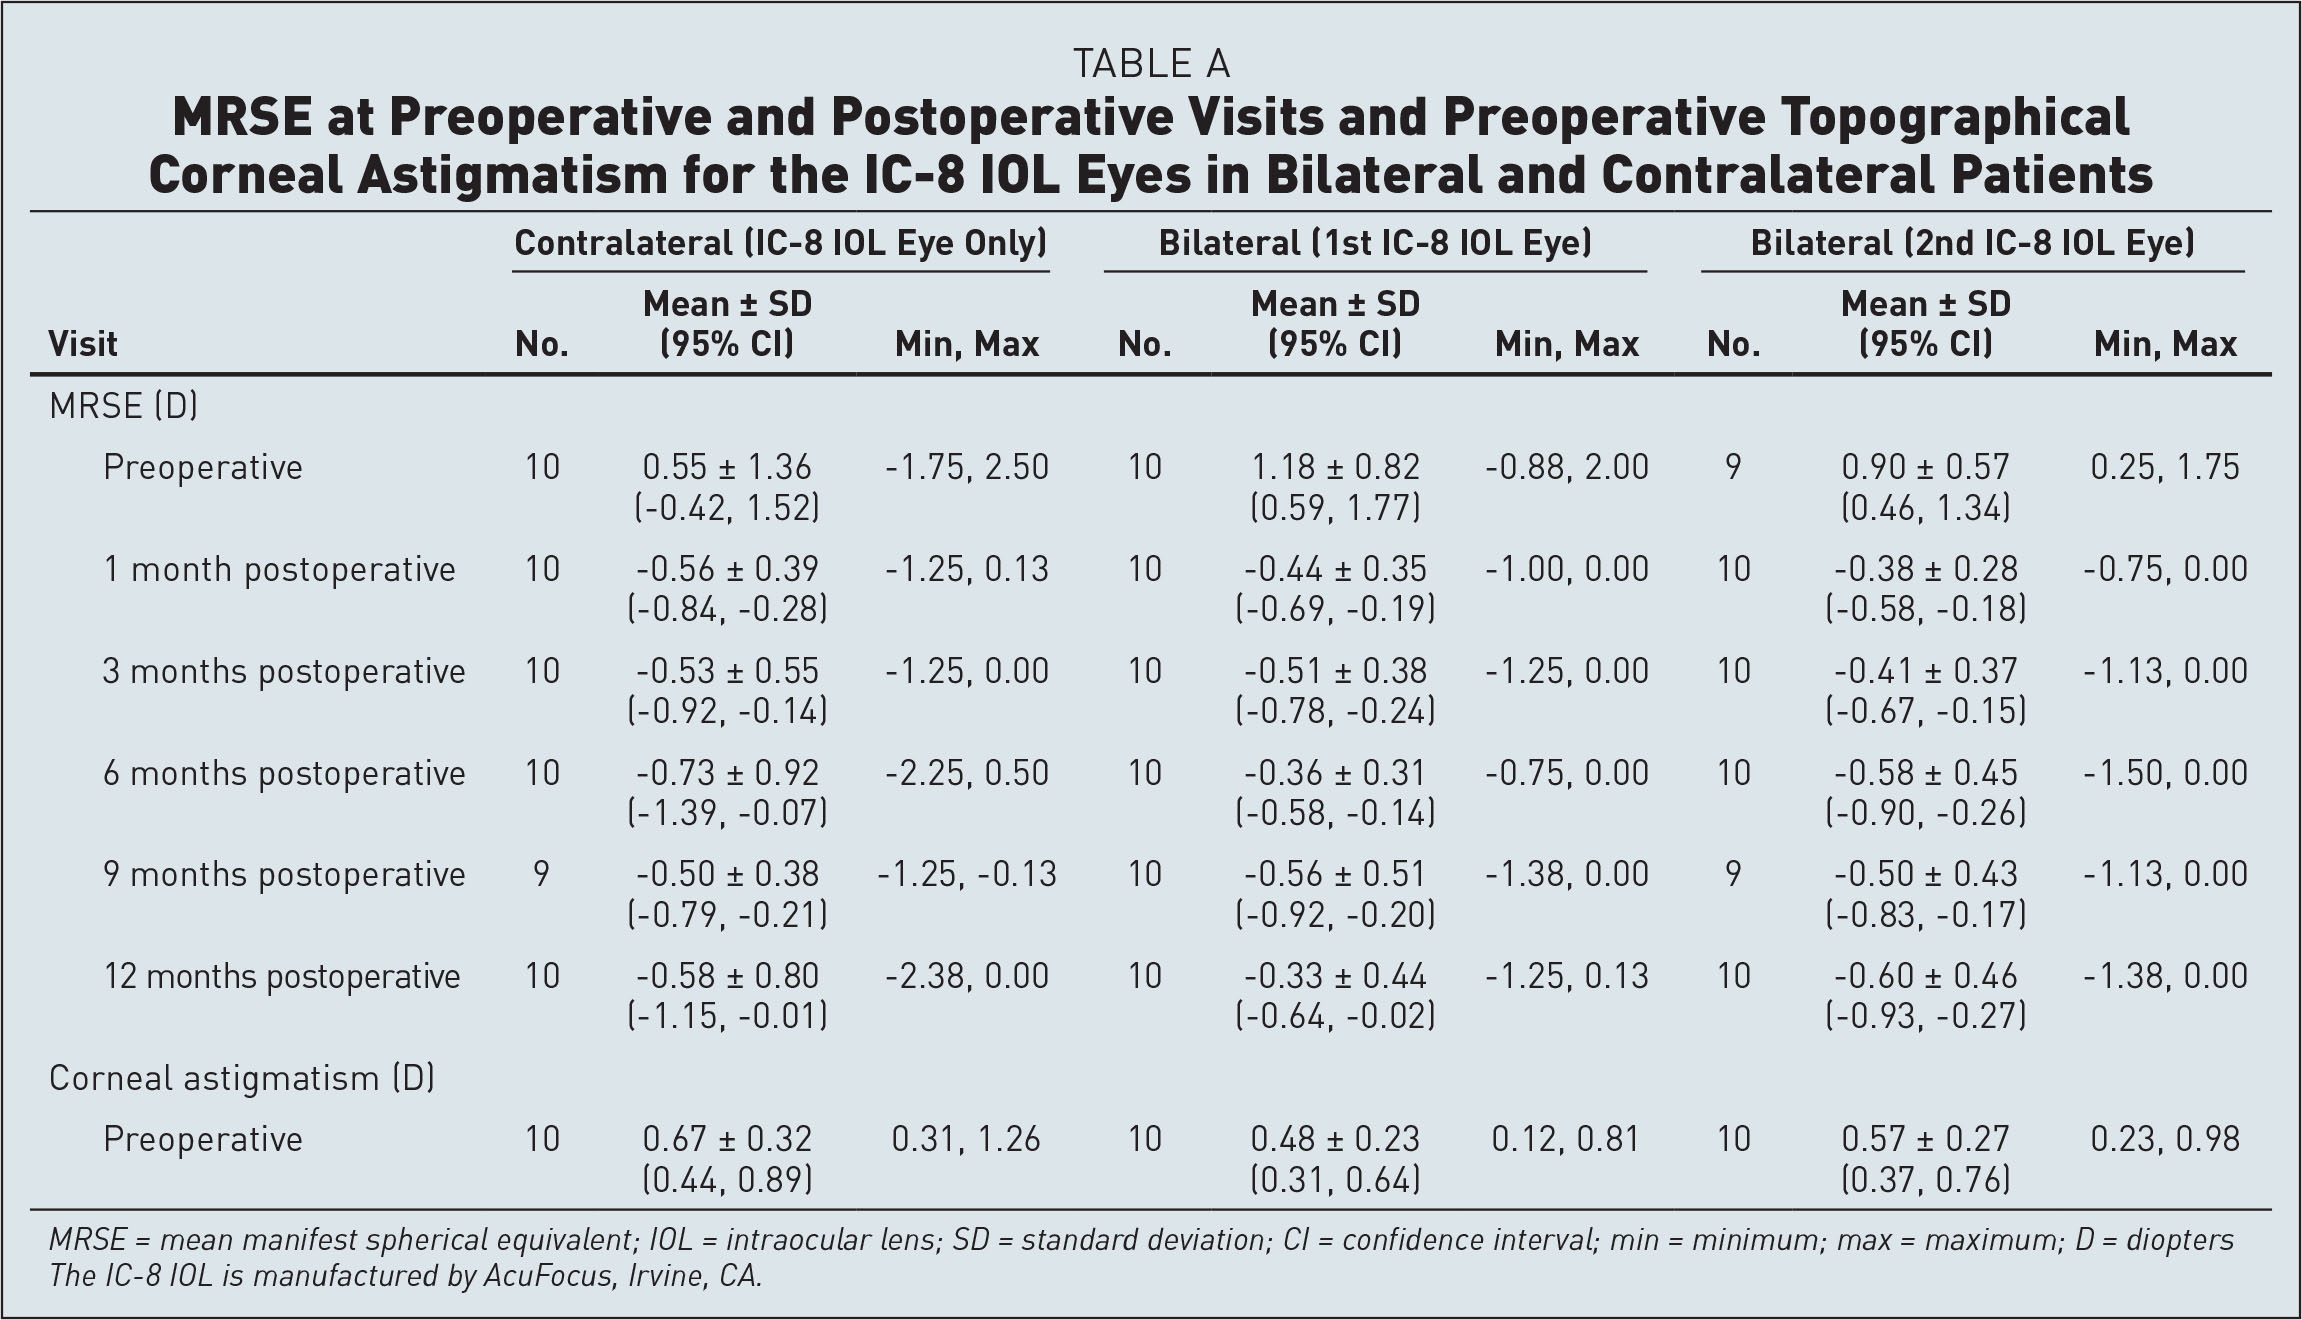 MRSE at Preoperative and Postoperative Visits and Preoperative Topographical Corneal Astigmatism for the IC-8 IOL Eyes in Bilateral and Contralateral Patients